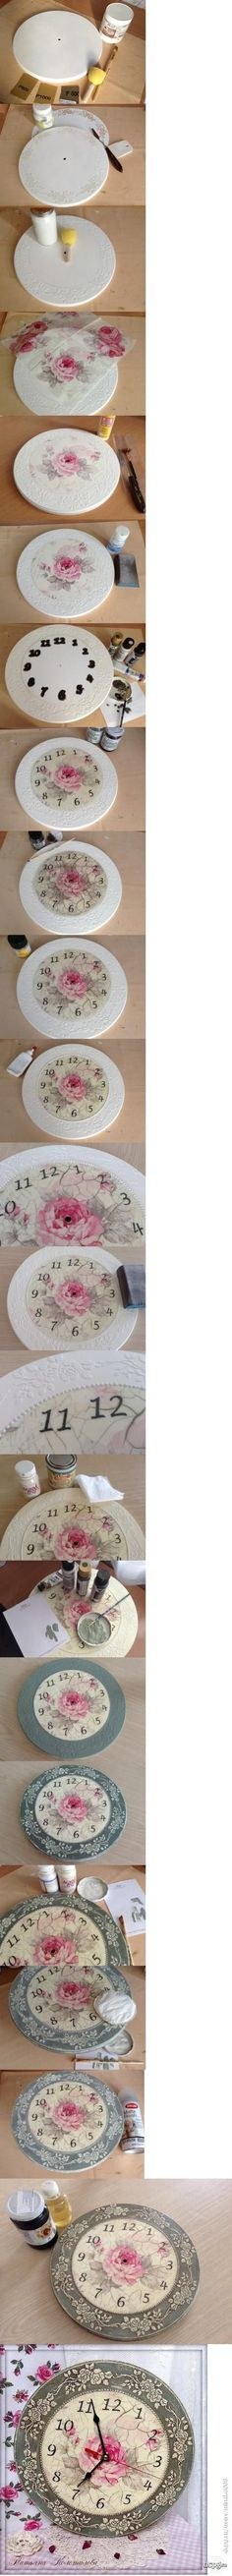 I will show you how to decoupage a lovely jars from. This video shows and explains all the techniques step by step. I used decoupage glue and paper napkins. Decoupage Jars, Decoupage Tutorial, Decoupage Vintage, Motifs Roses, Diy And Crafts, Arts And Crafts, Decor Crafts, Shabby Chic Crafts, Diy Clock